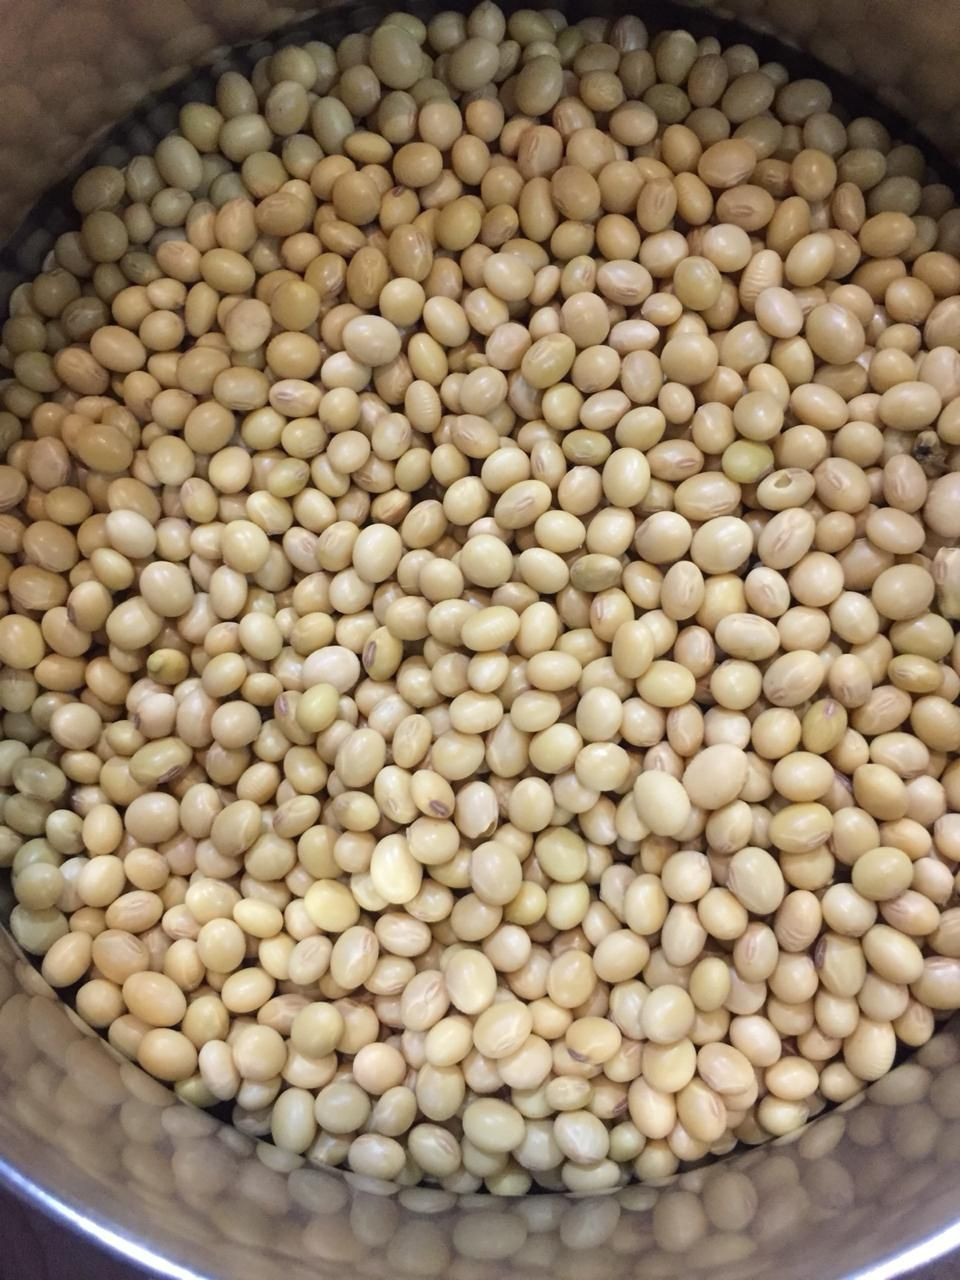 NON GMO AND GMO SOYBEAN